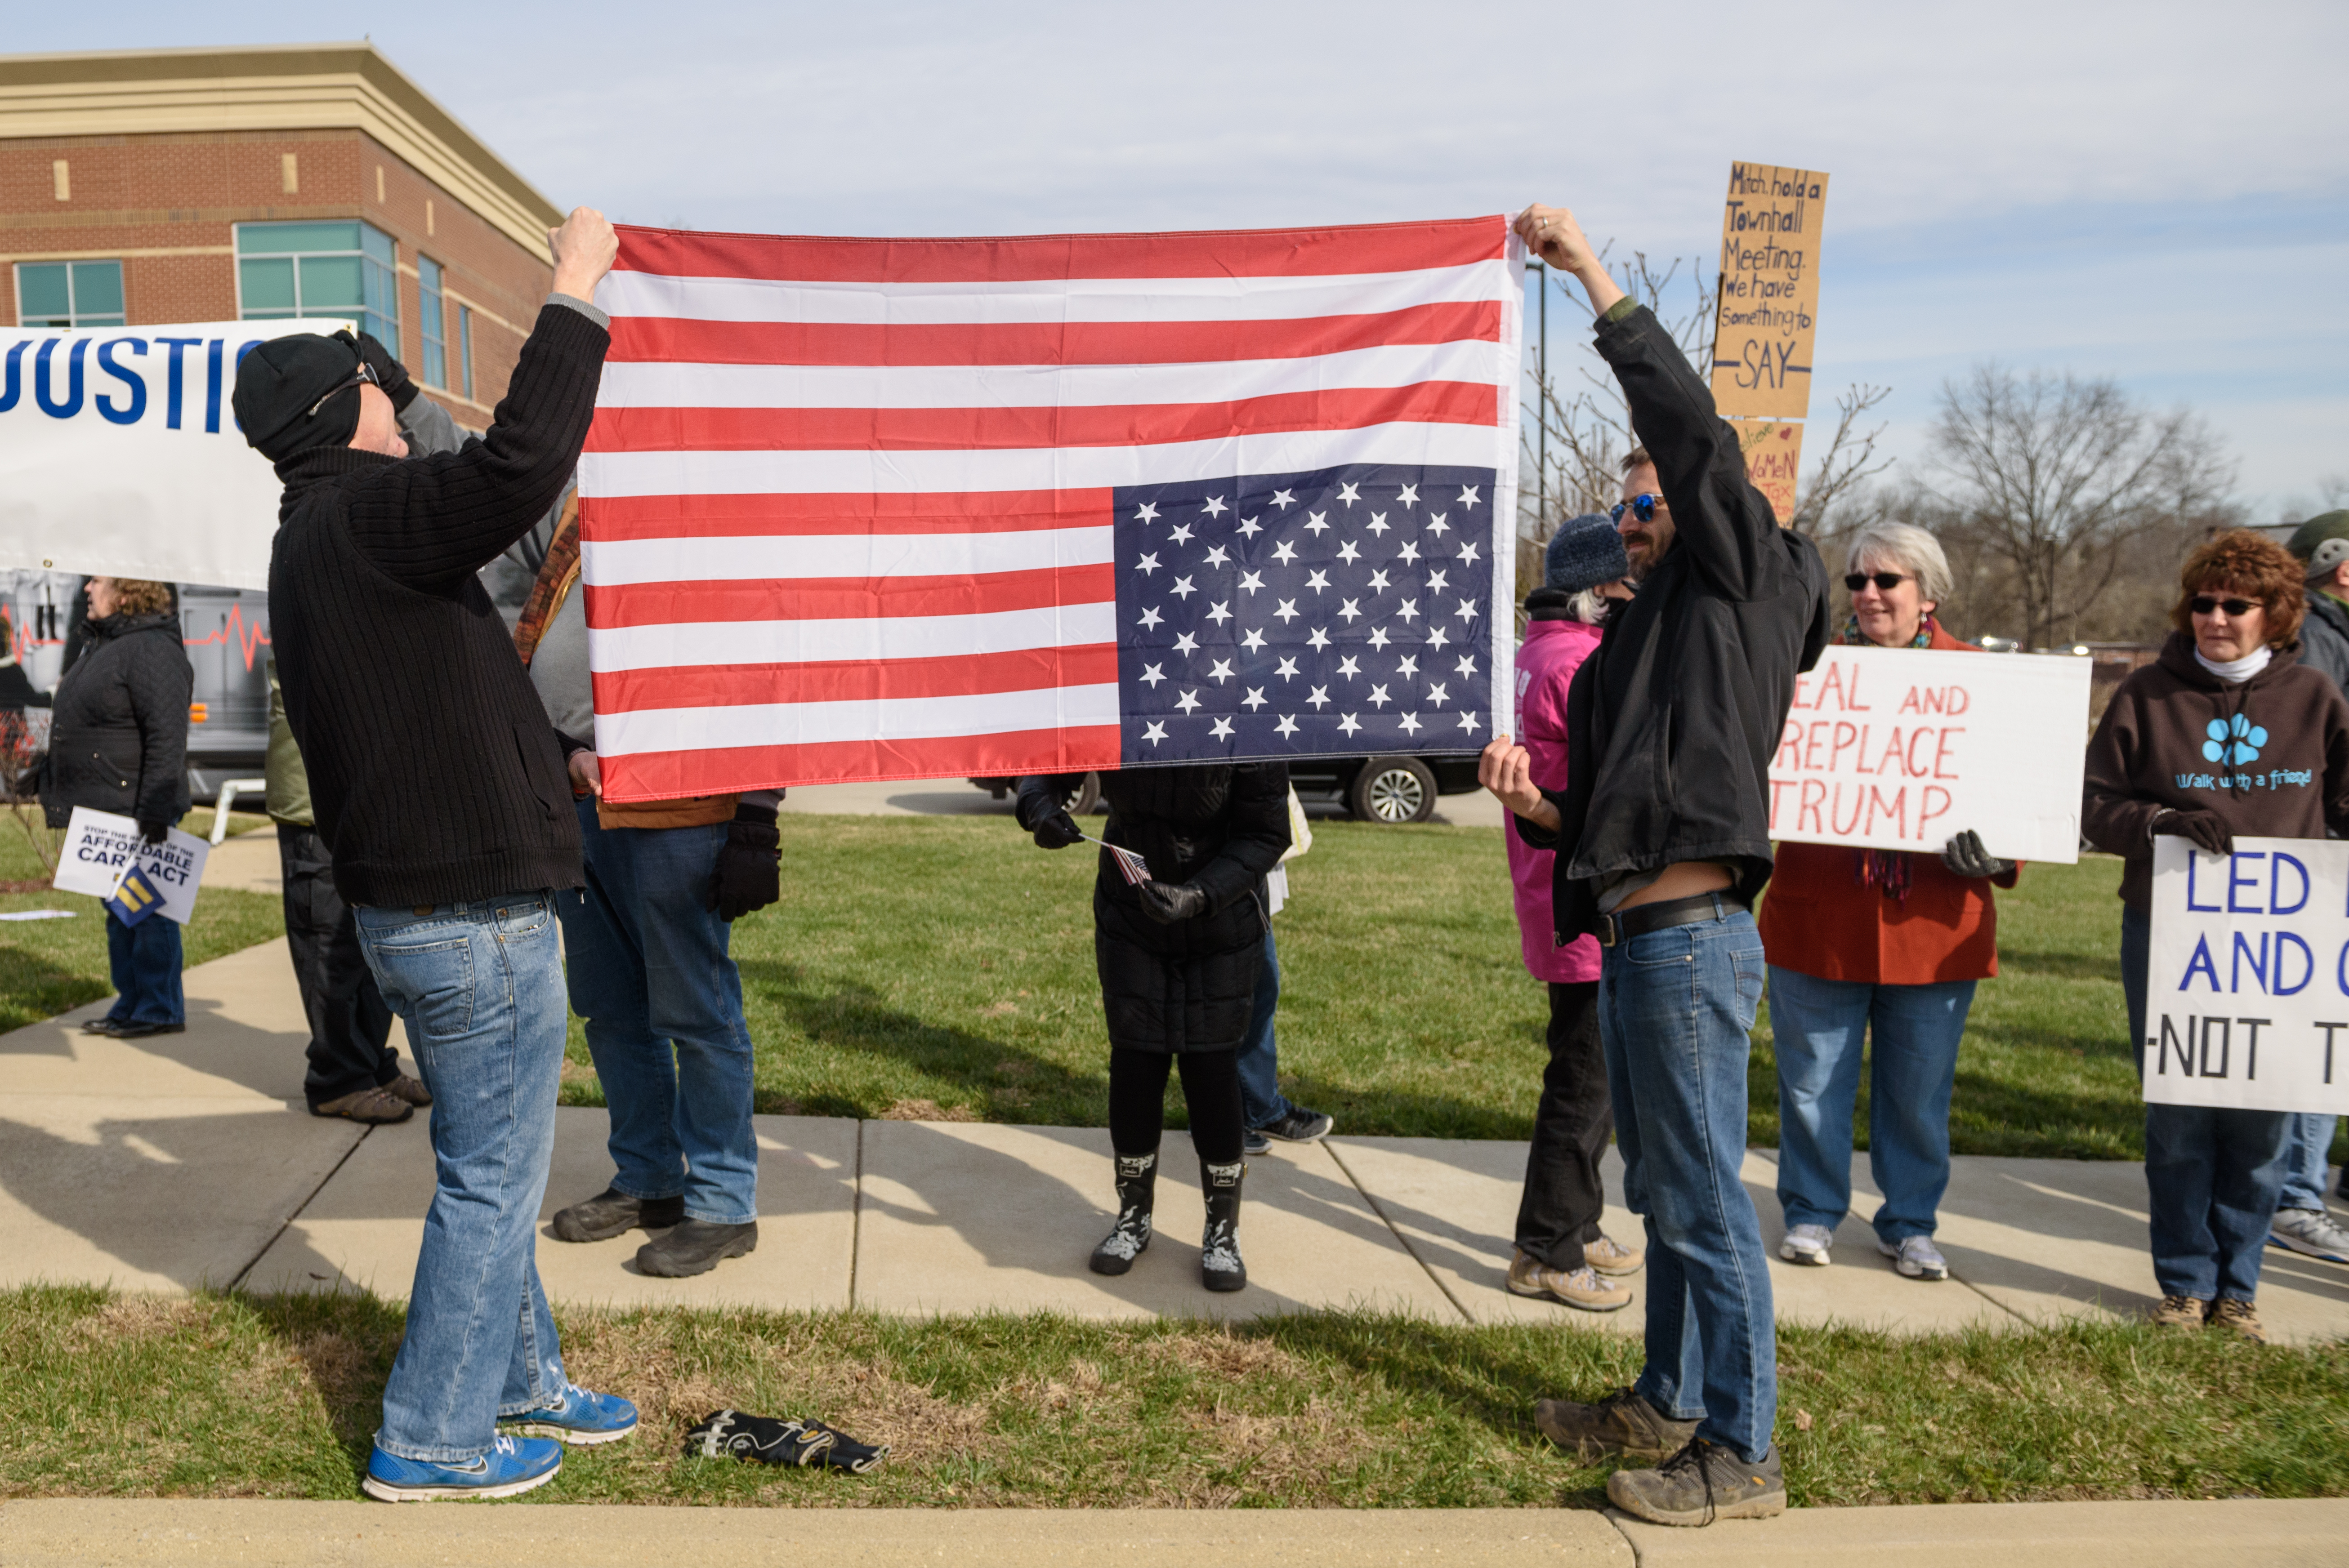 An American flag is held upside down, a sign of distress.